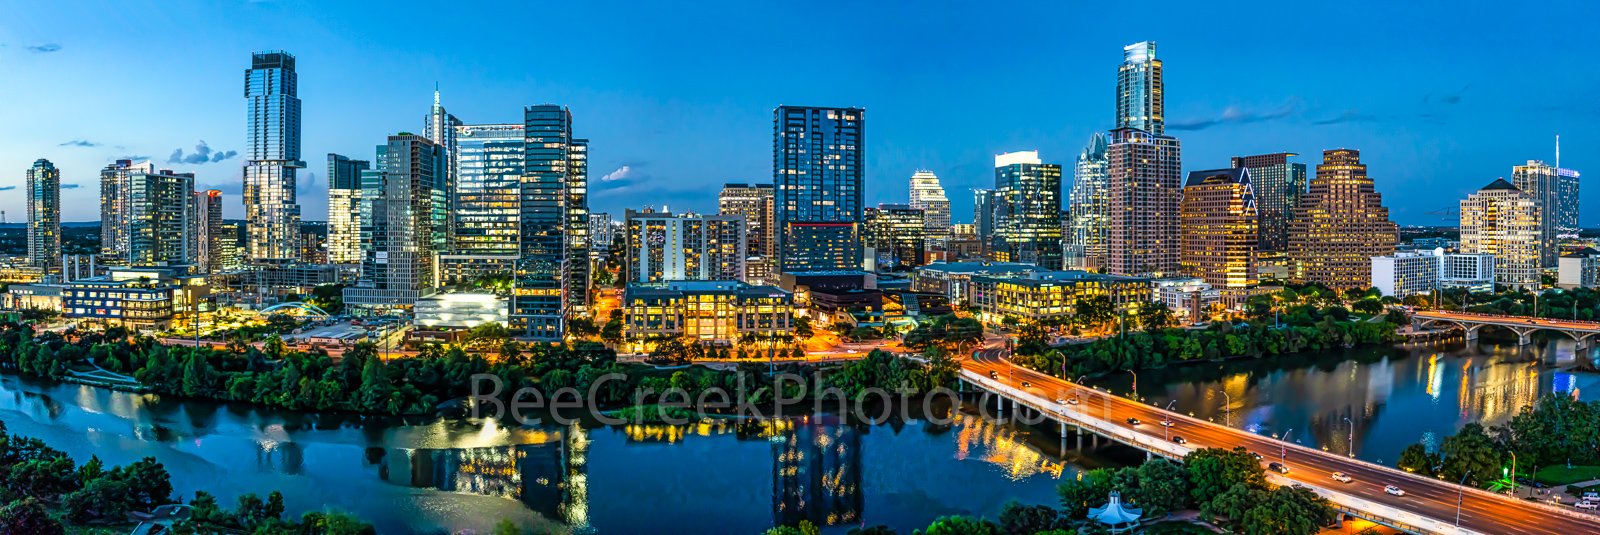 Austin Skyline, Austin Skyline pictures, Austin skyline images, image of Austin skyline, twilight, Austin, skyline, twilight, blue hour, aerial, lady bird lake, hike and bike trail, cityscape, water, , photo